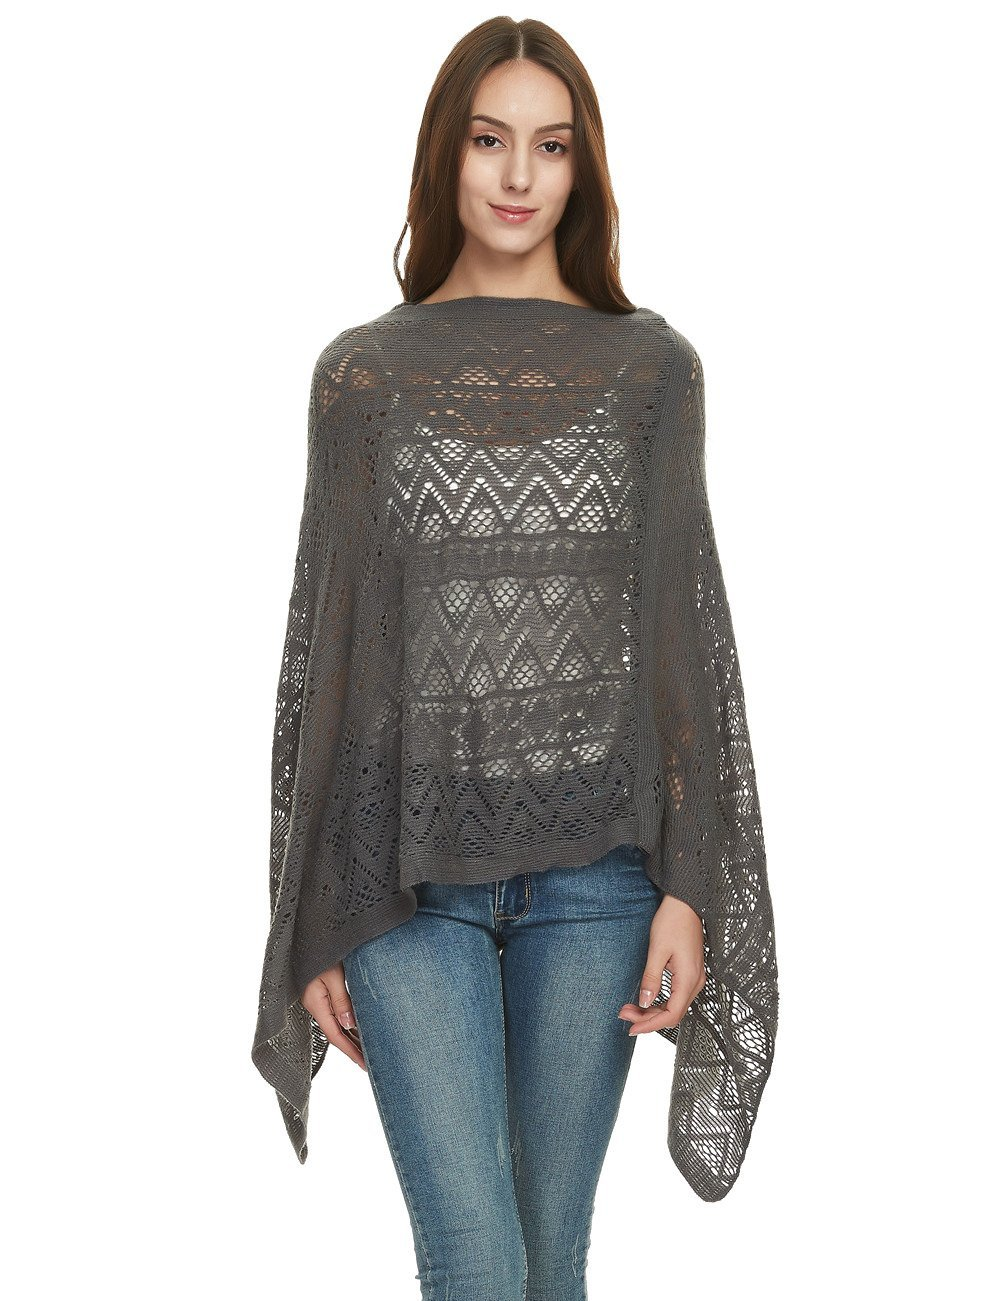 Ferand Women's Asymmetrical Crochet Poncho Tops in Multi-Way Neck Style, One Size, Dark Gray